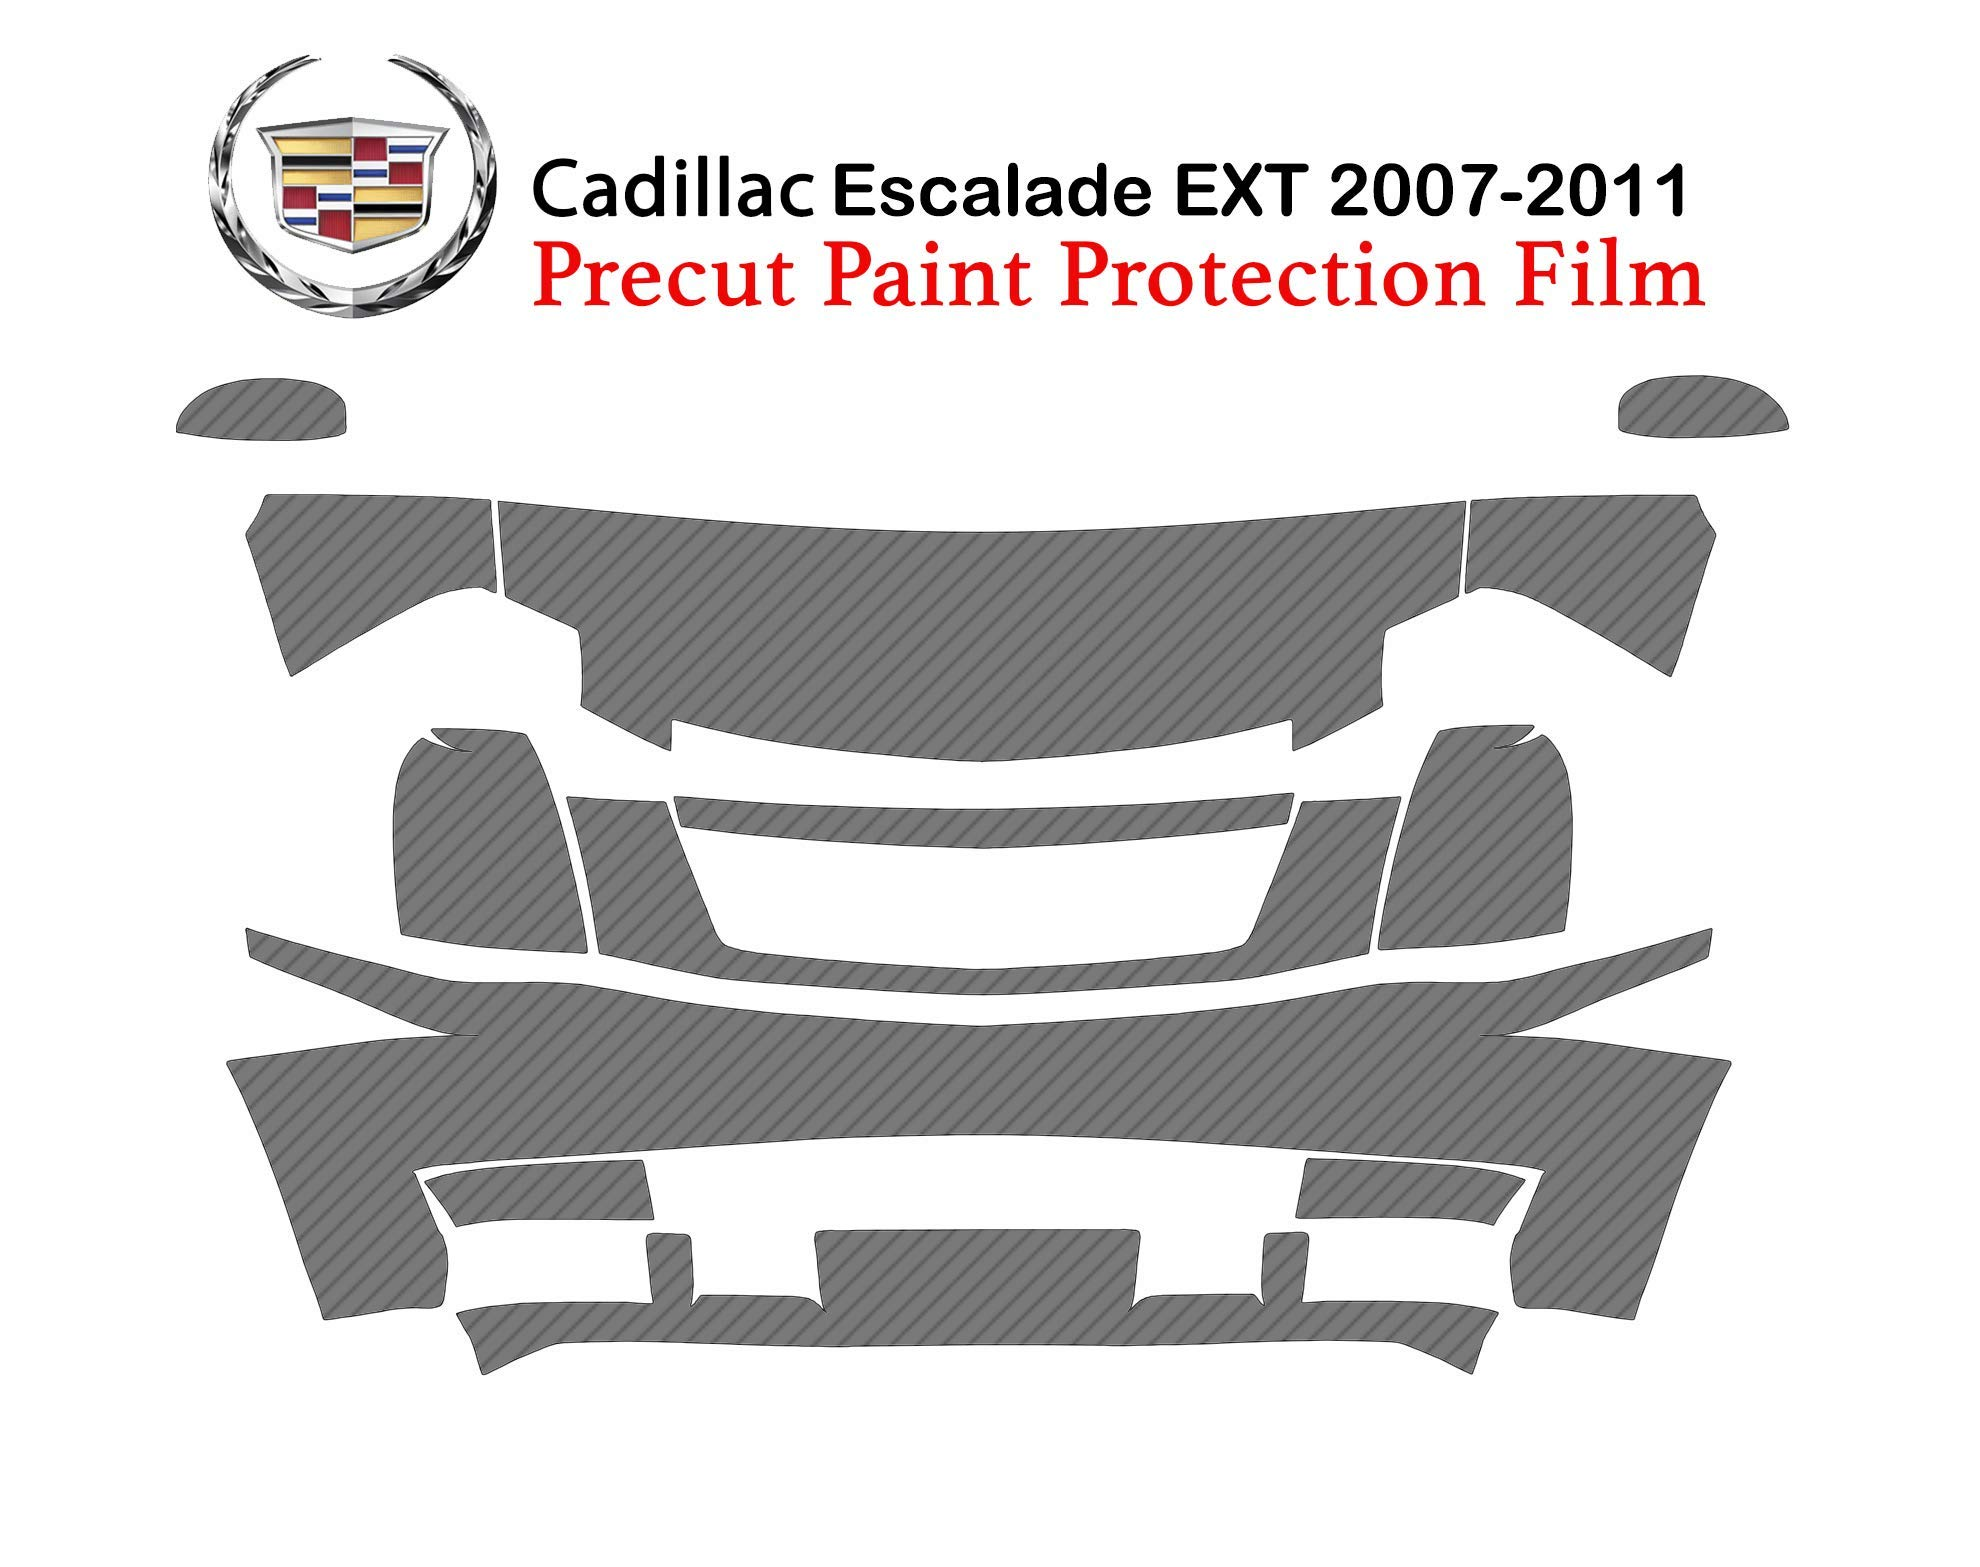 The Online Liquidator Precut Paint Protection Film fits Cadillac Escalade EXT 2007-2011 - Premium Full Front Clear Bra Shield Cover